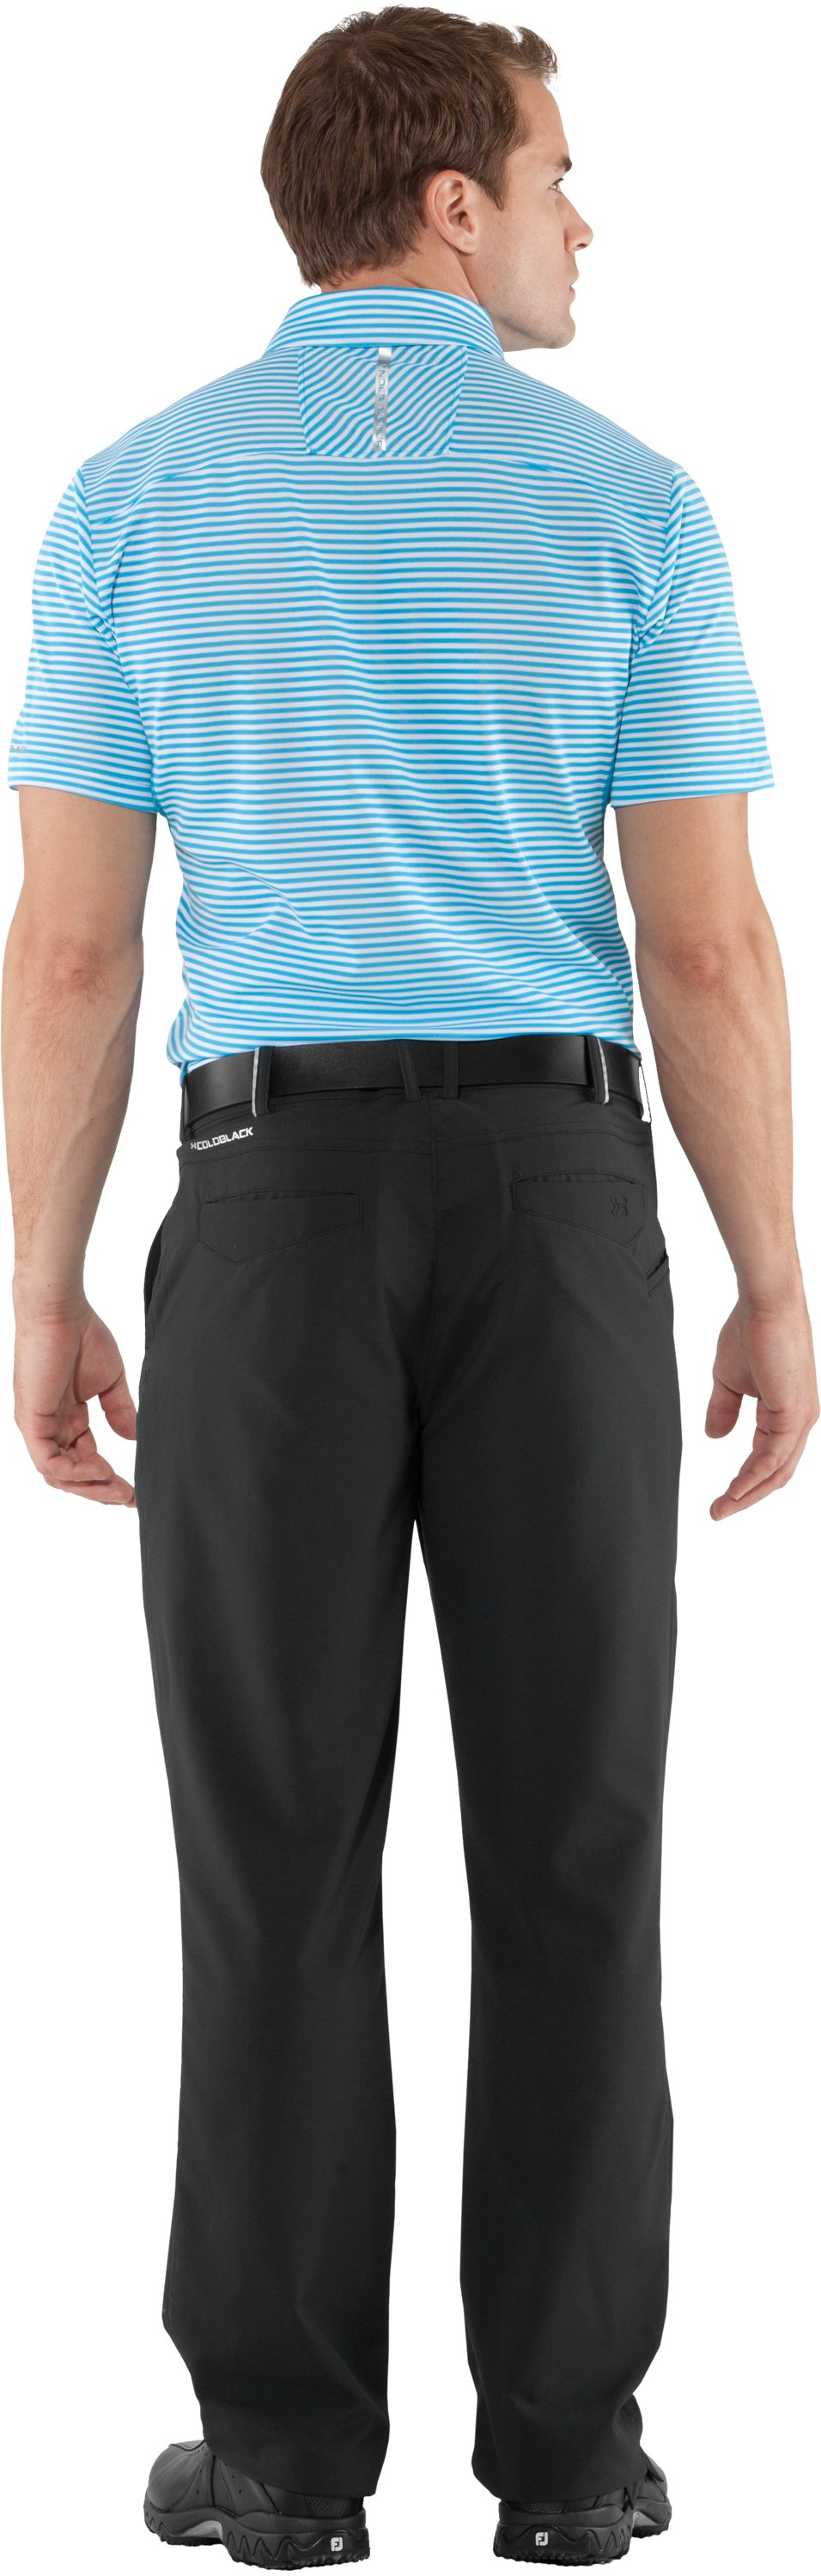 Men's coldblack® Optic Stripe Polo, Cortez, Back